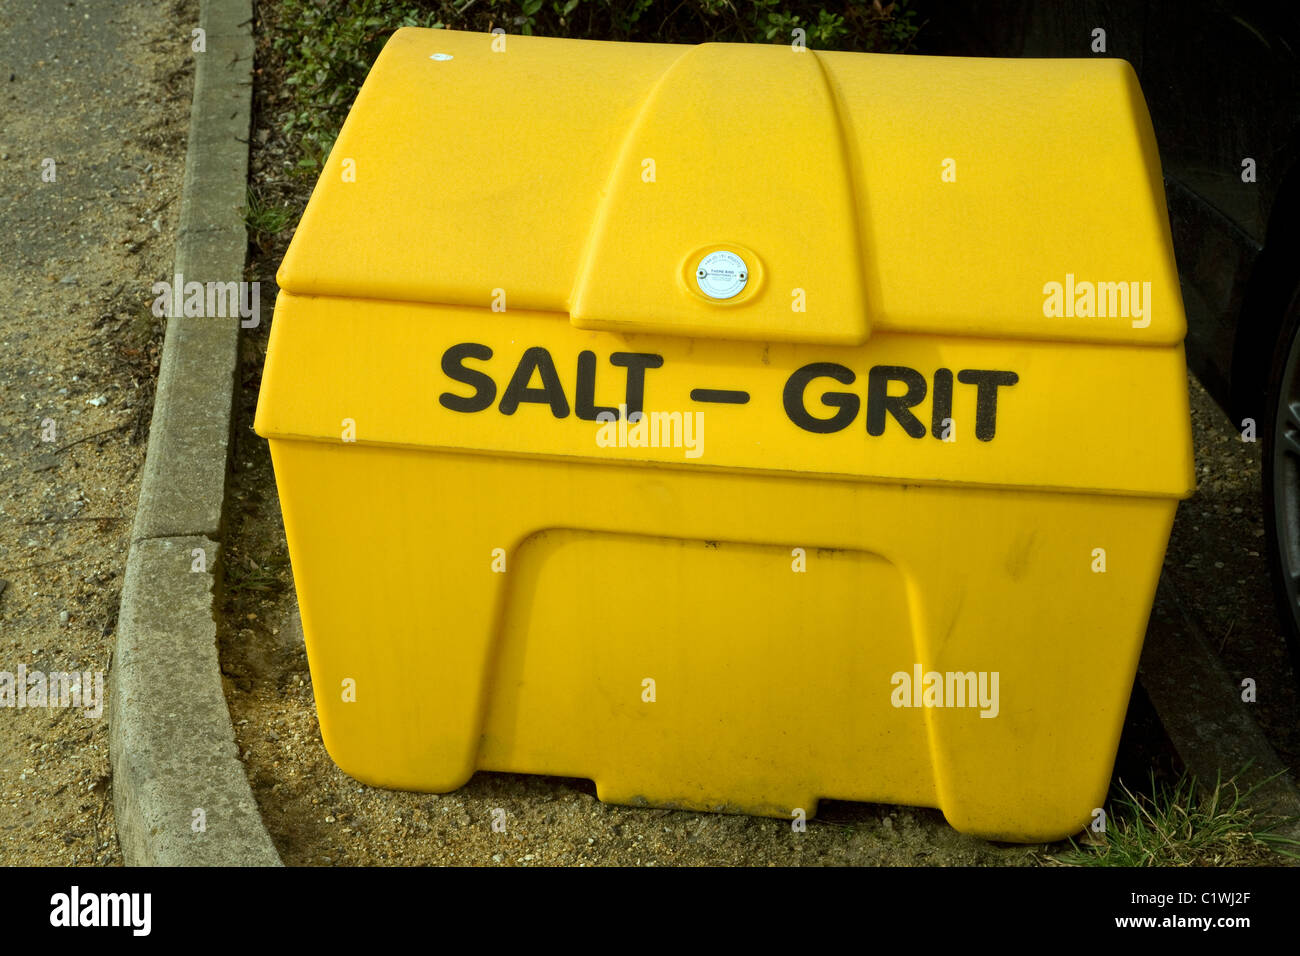 Yellow salt grit container by roadside - Stock Image